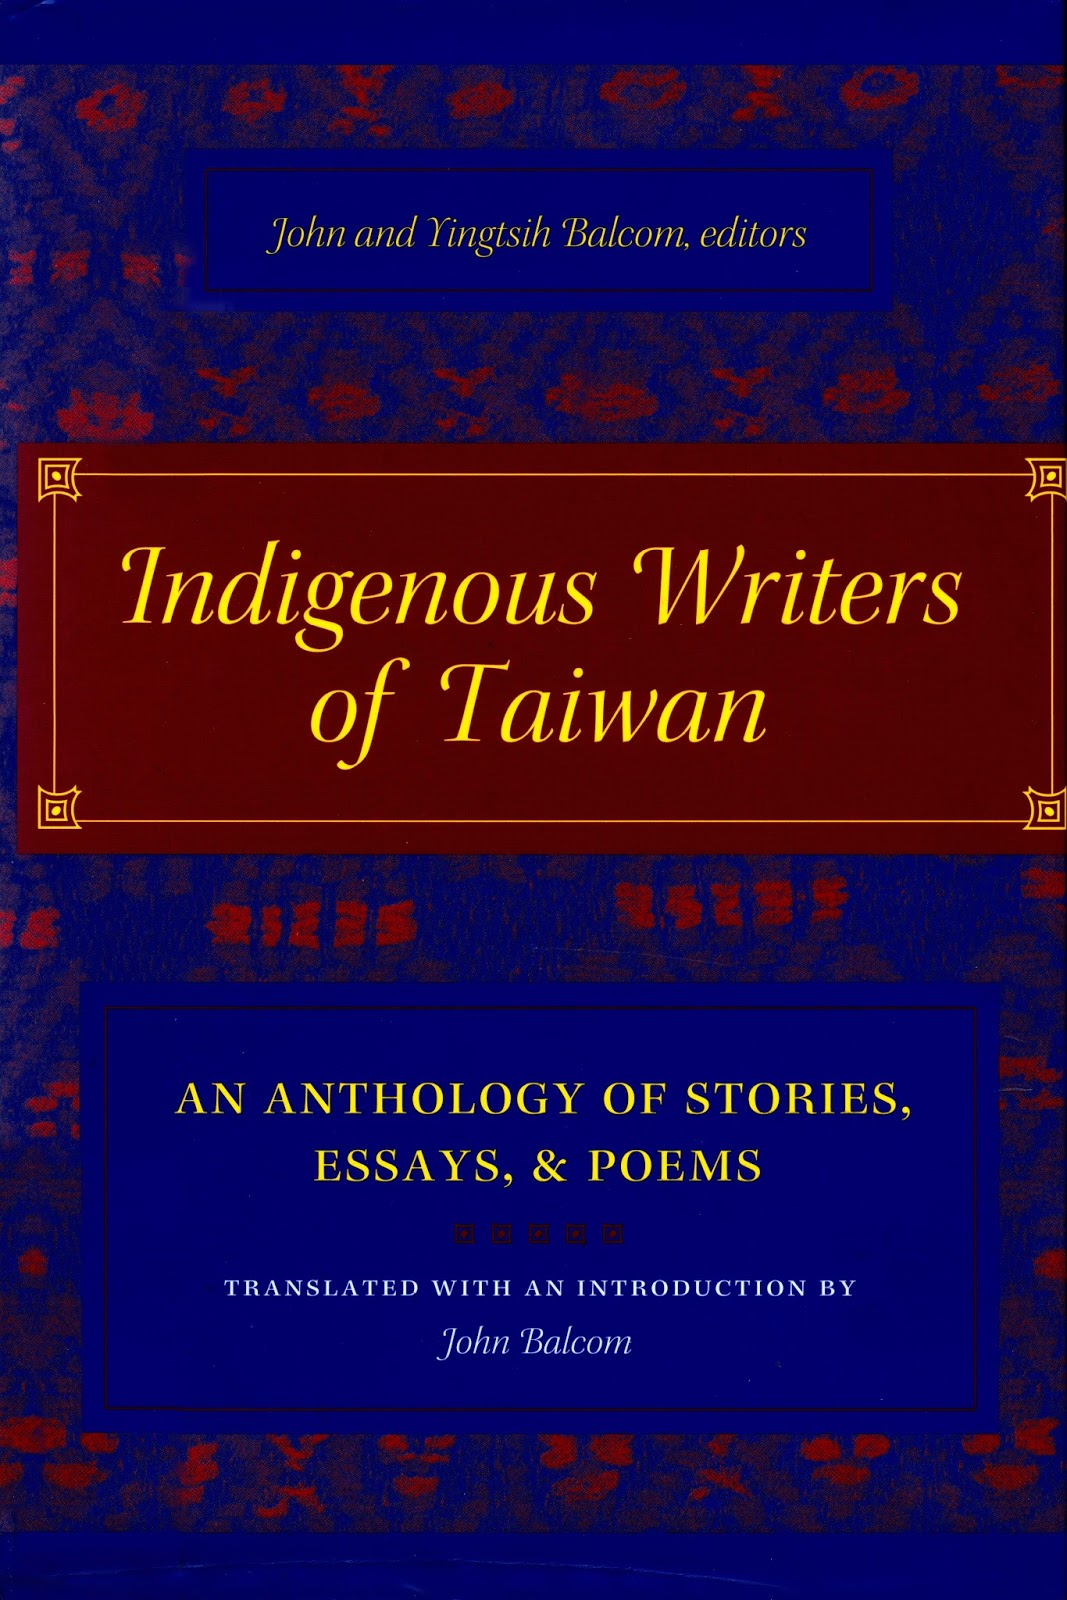 Indigenous Writers of Taiwan : An Anthology of Stories, Essays, & Poems(2005)